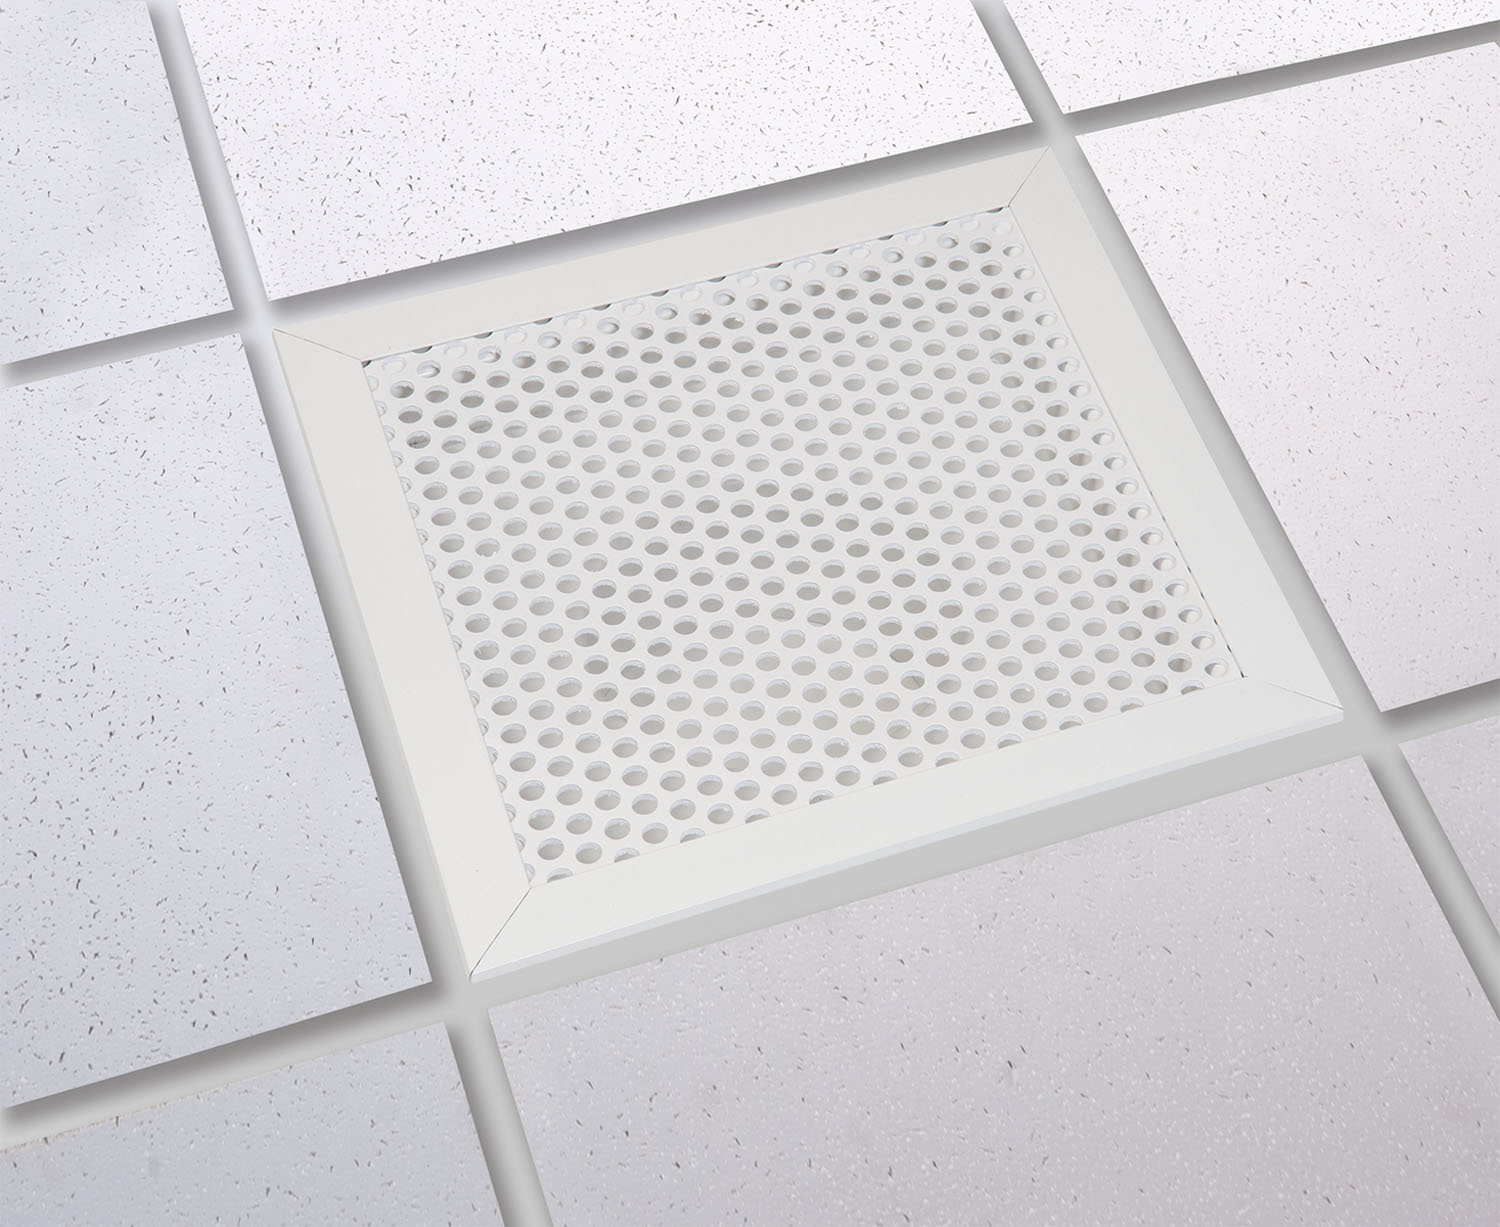 Grid Ceiling Return Air Grille : Air return ″ perforated hole pattern with recessed